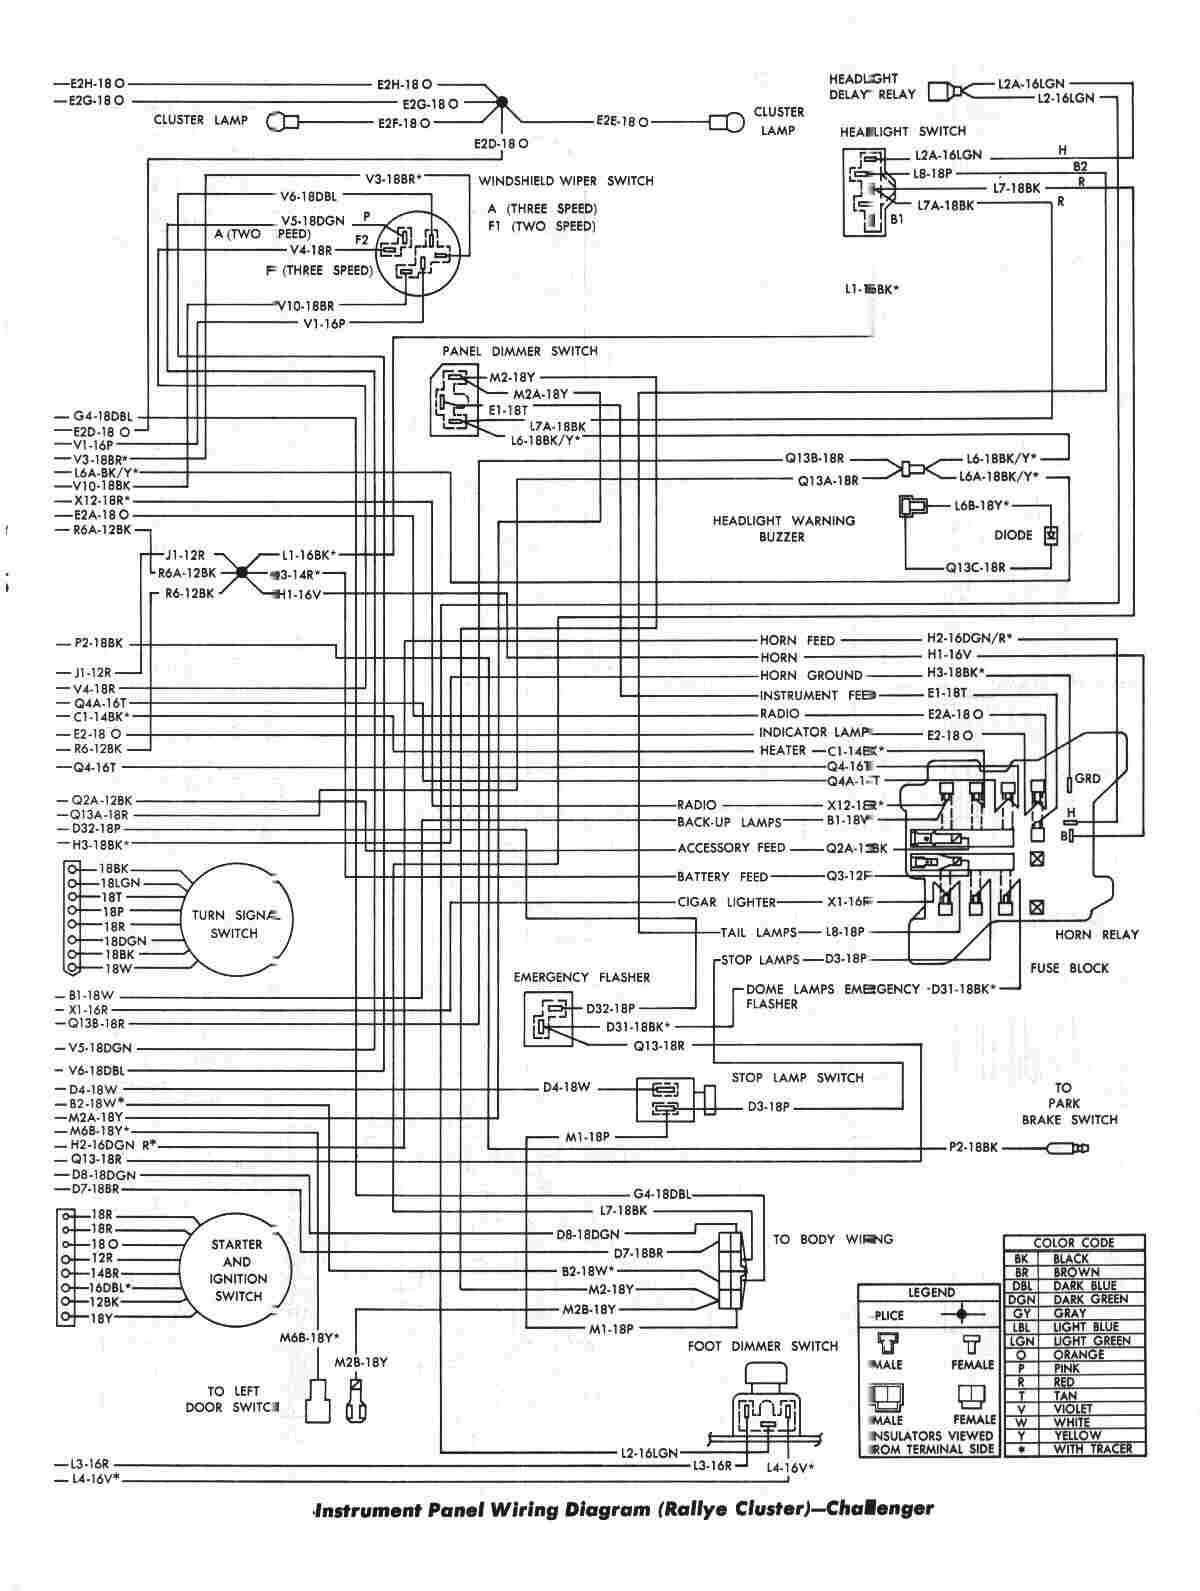 dodge electronic ignition wiring diagram nissan 240sx fuel pump 1975 w100 1971